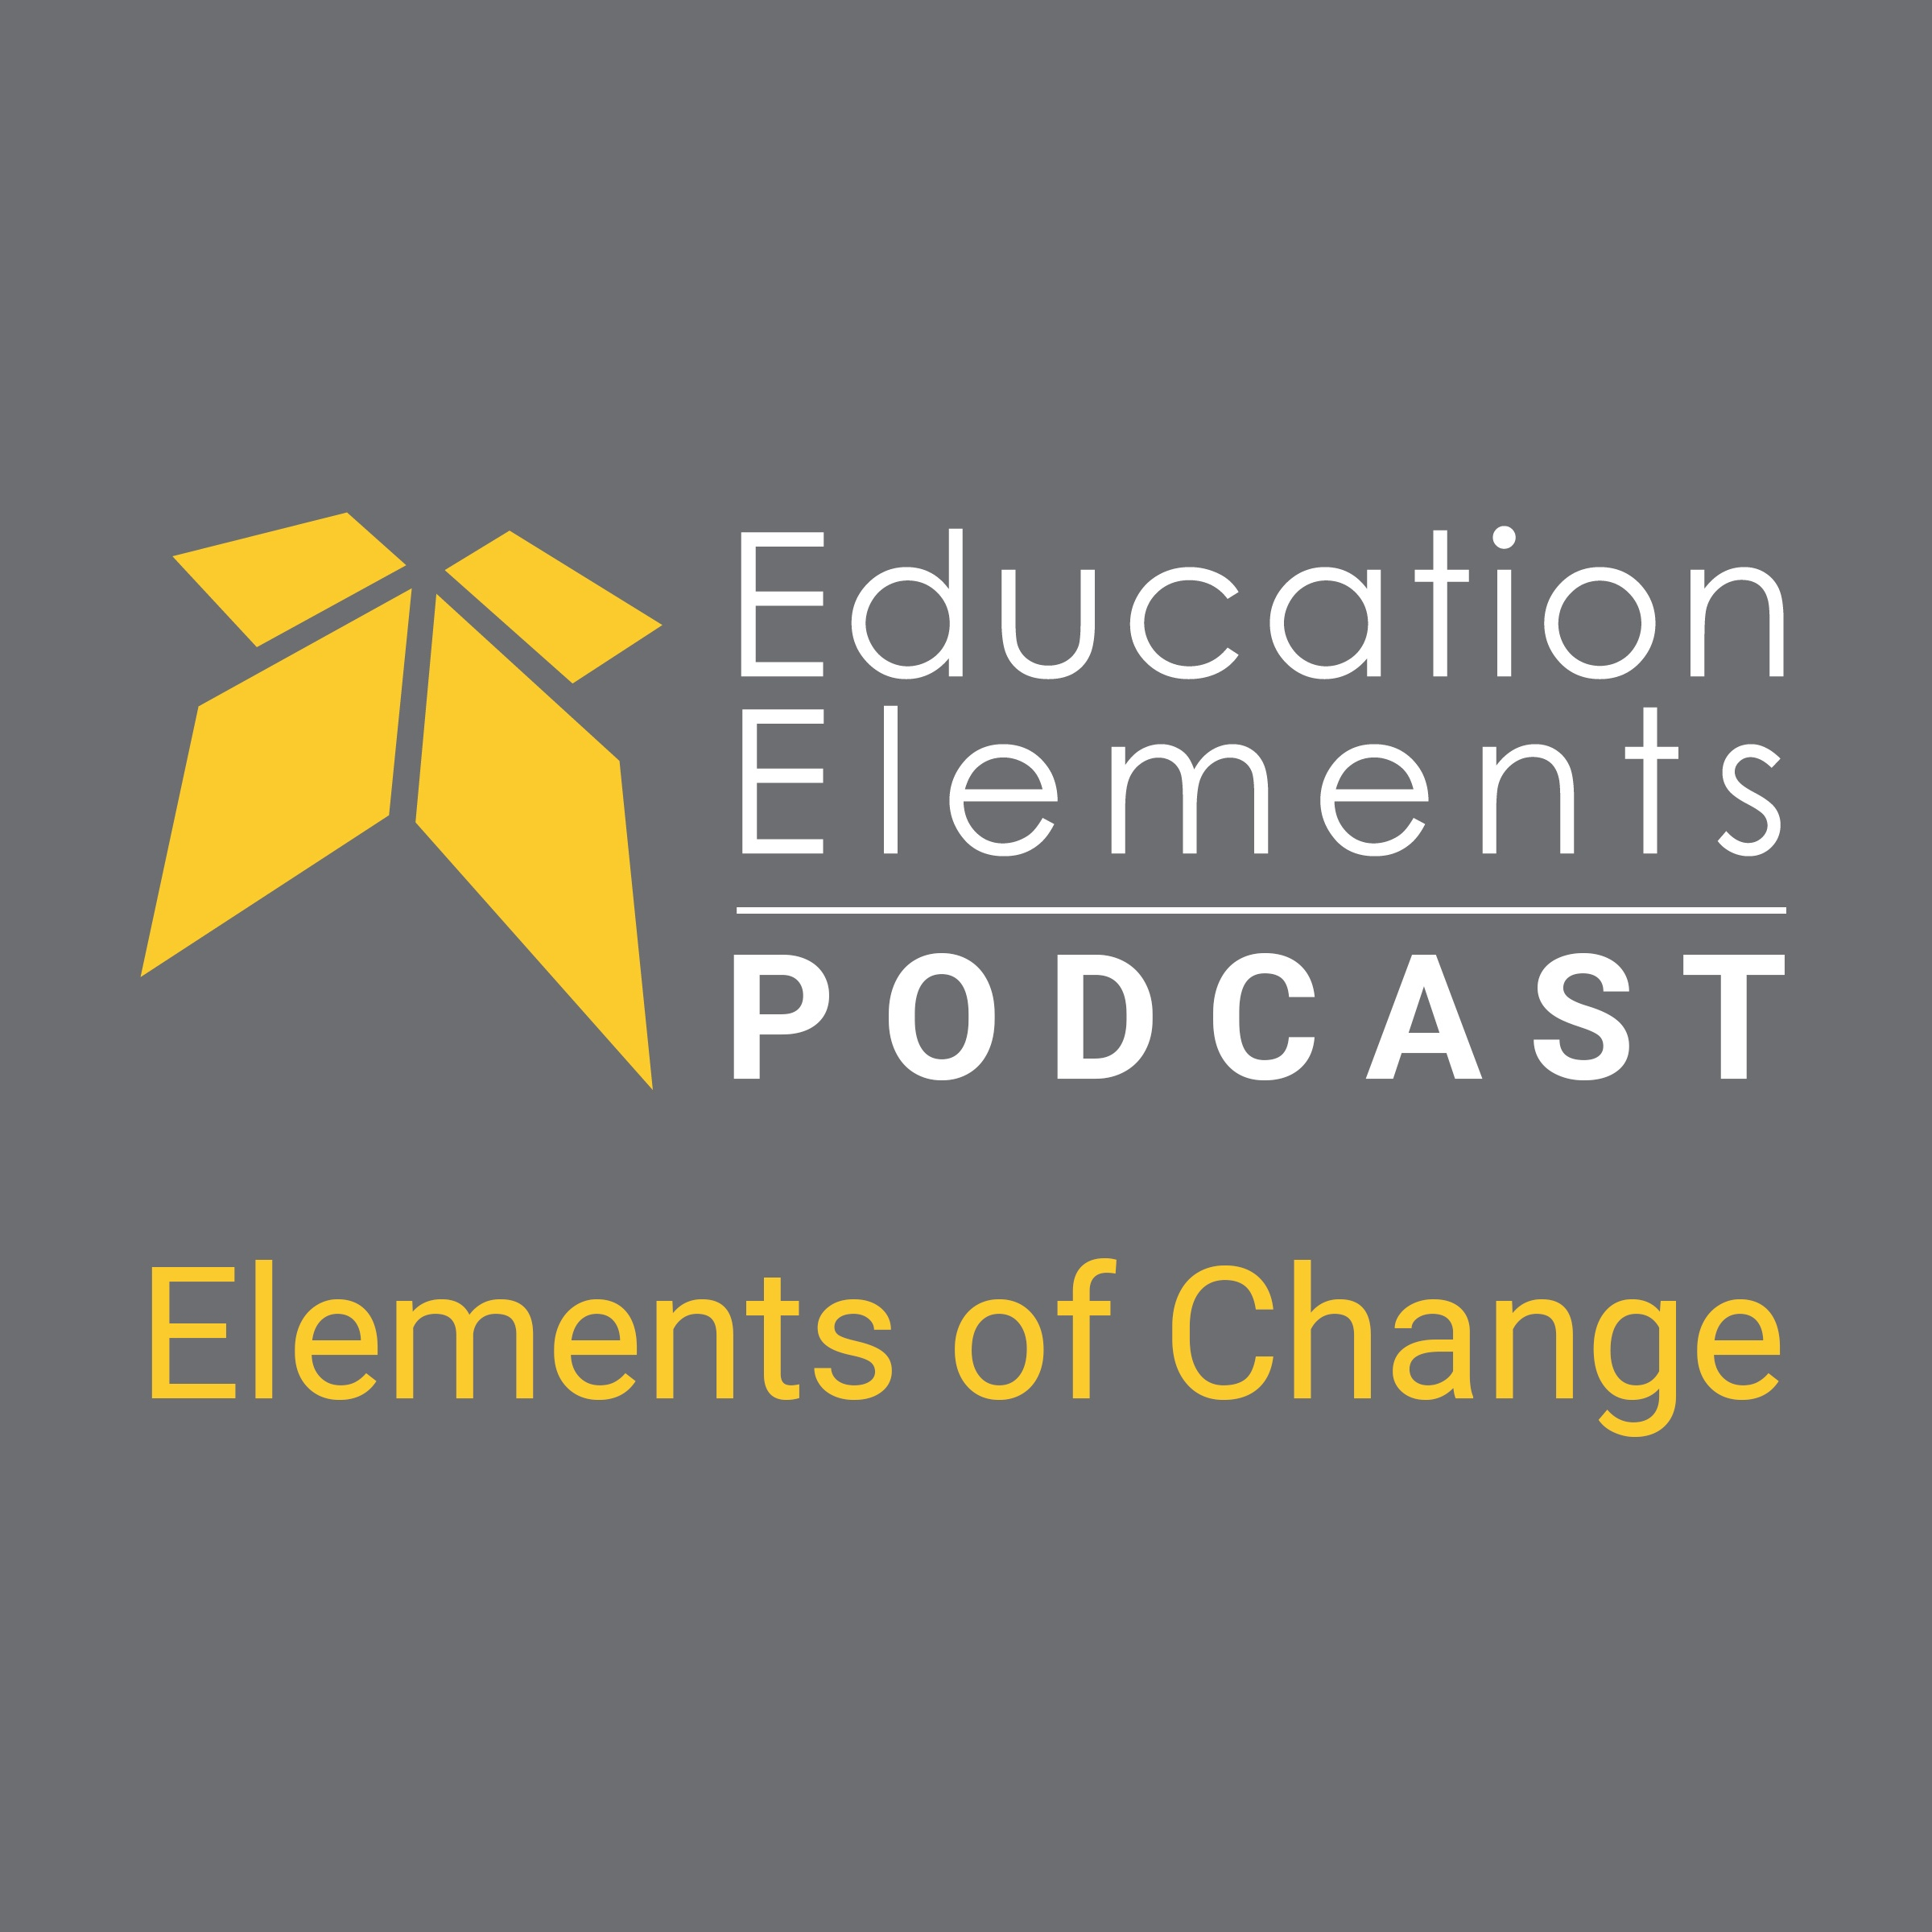 Elements of Change Podcast Logo.jpg